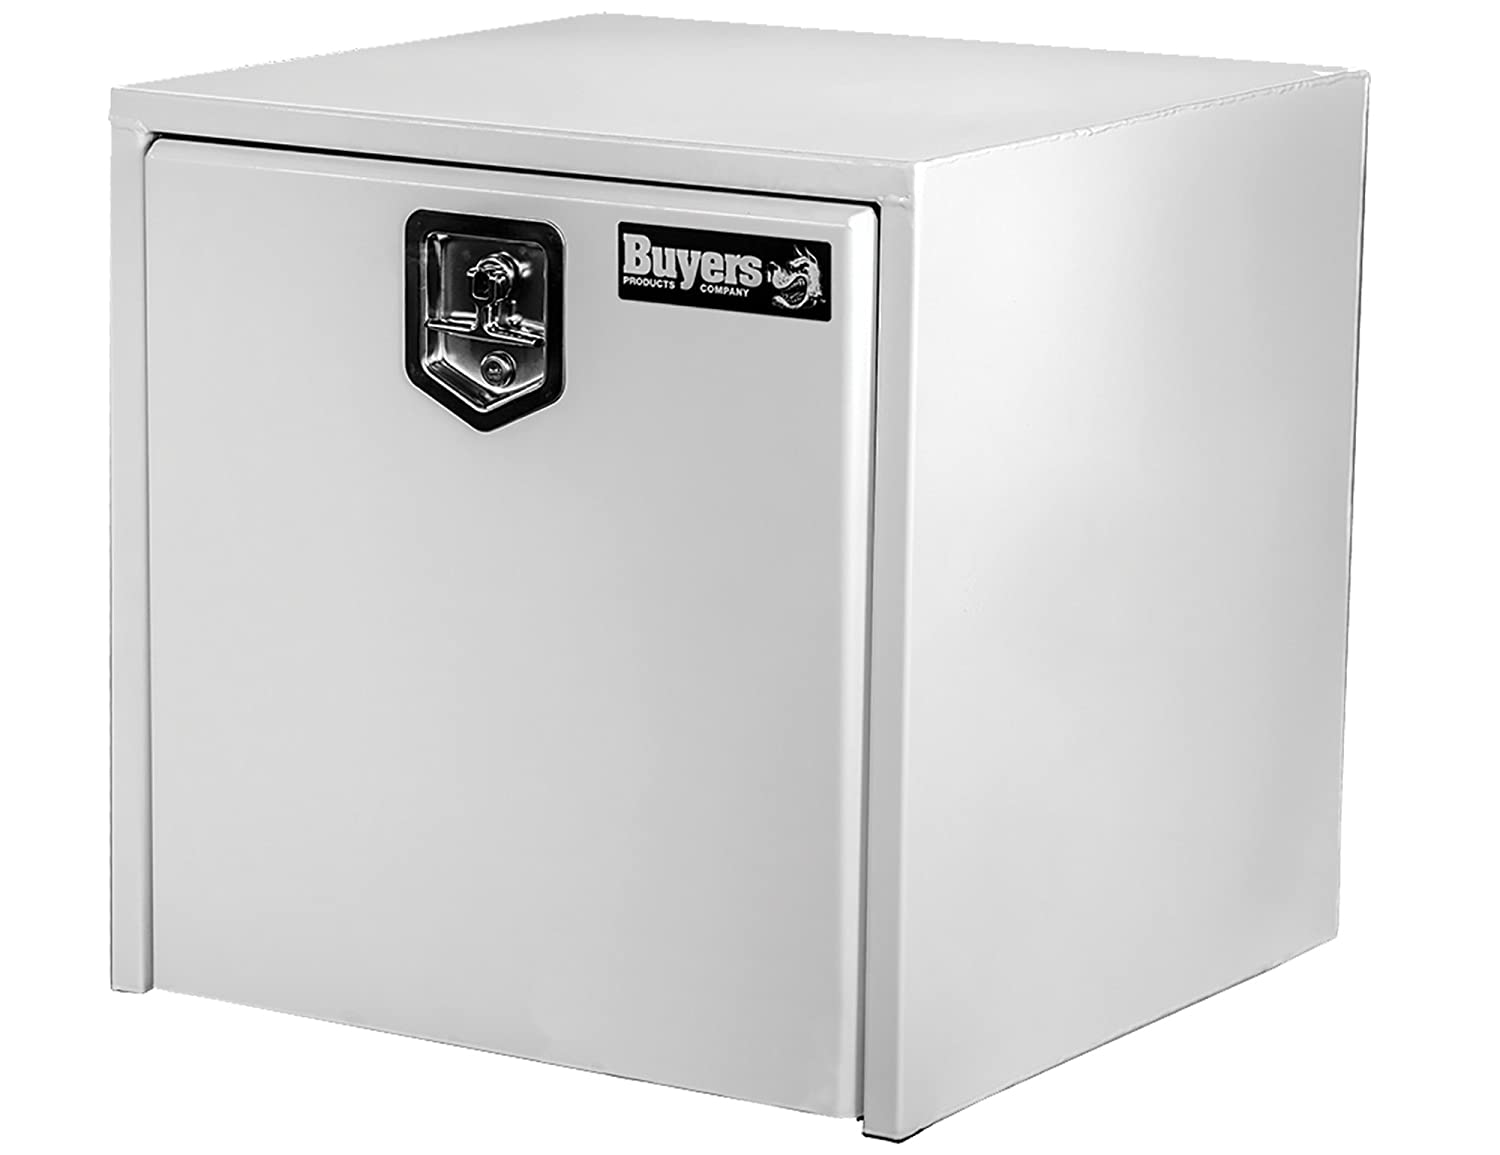 Buyers Products 1702403 18x18x30 inches Truck Box